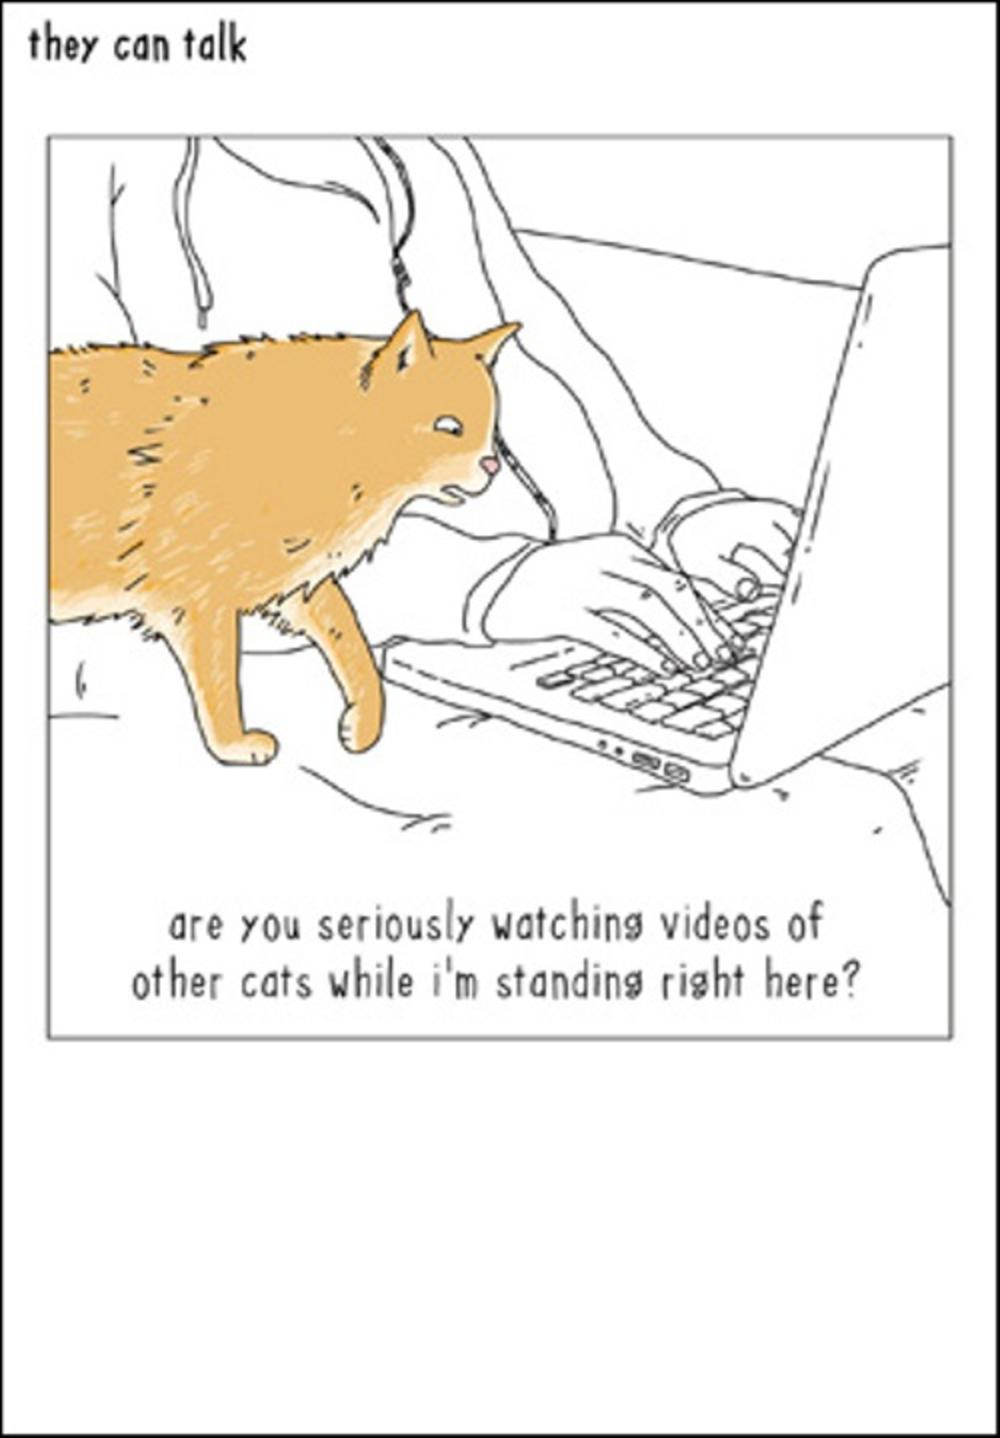 Cat Videos Funny They Can Talk Greeting Card Cards Love Kates